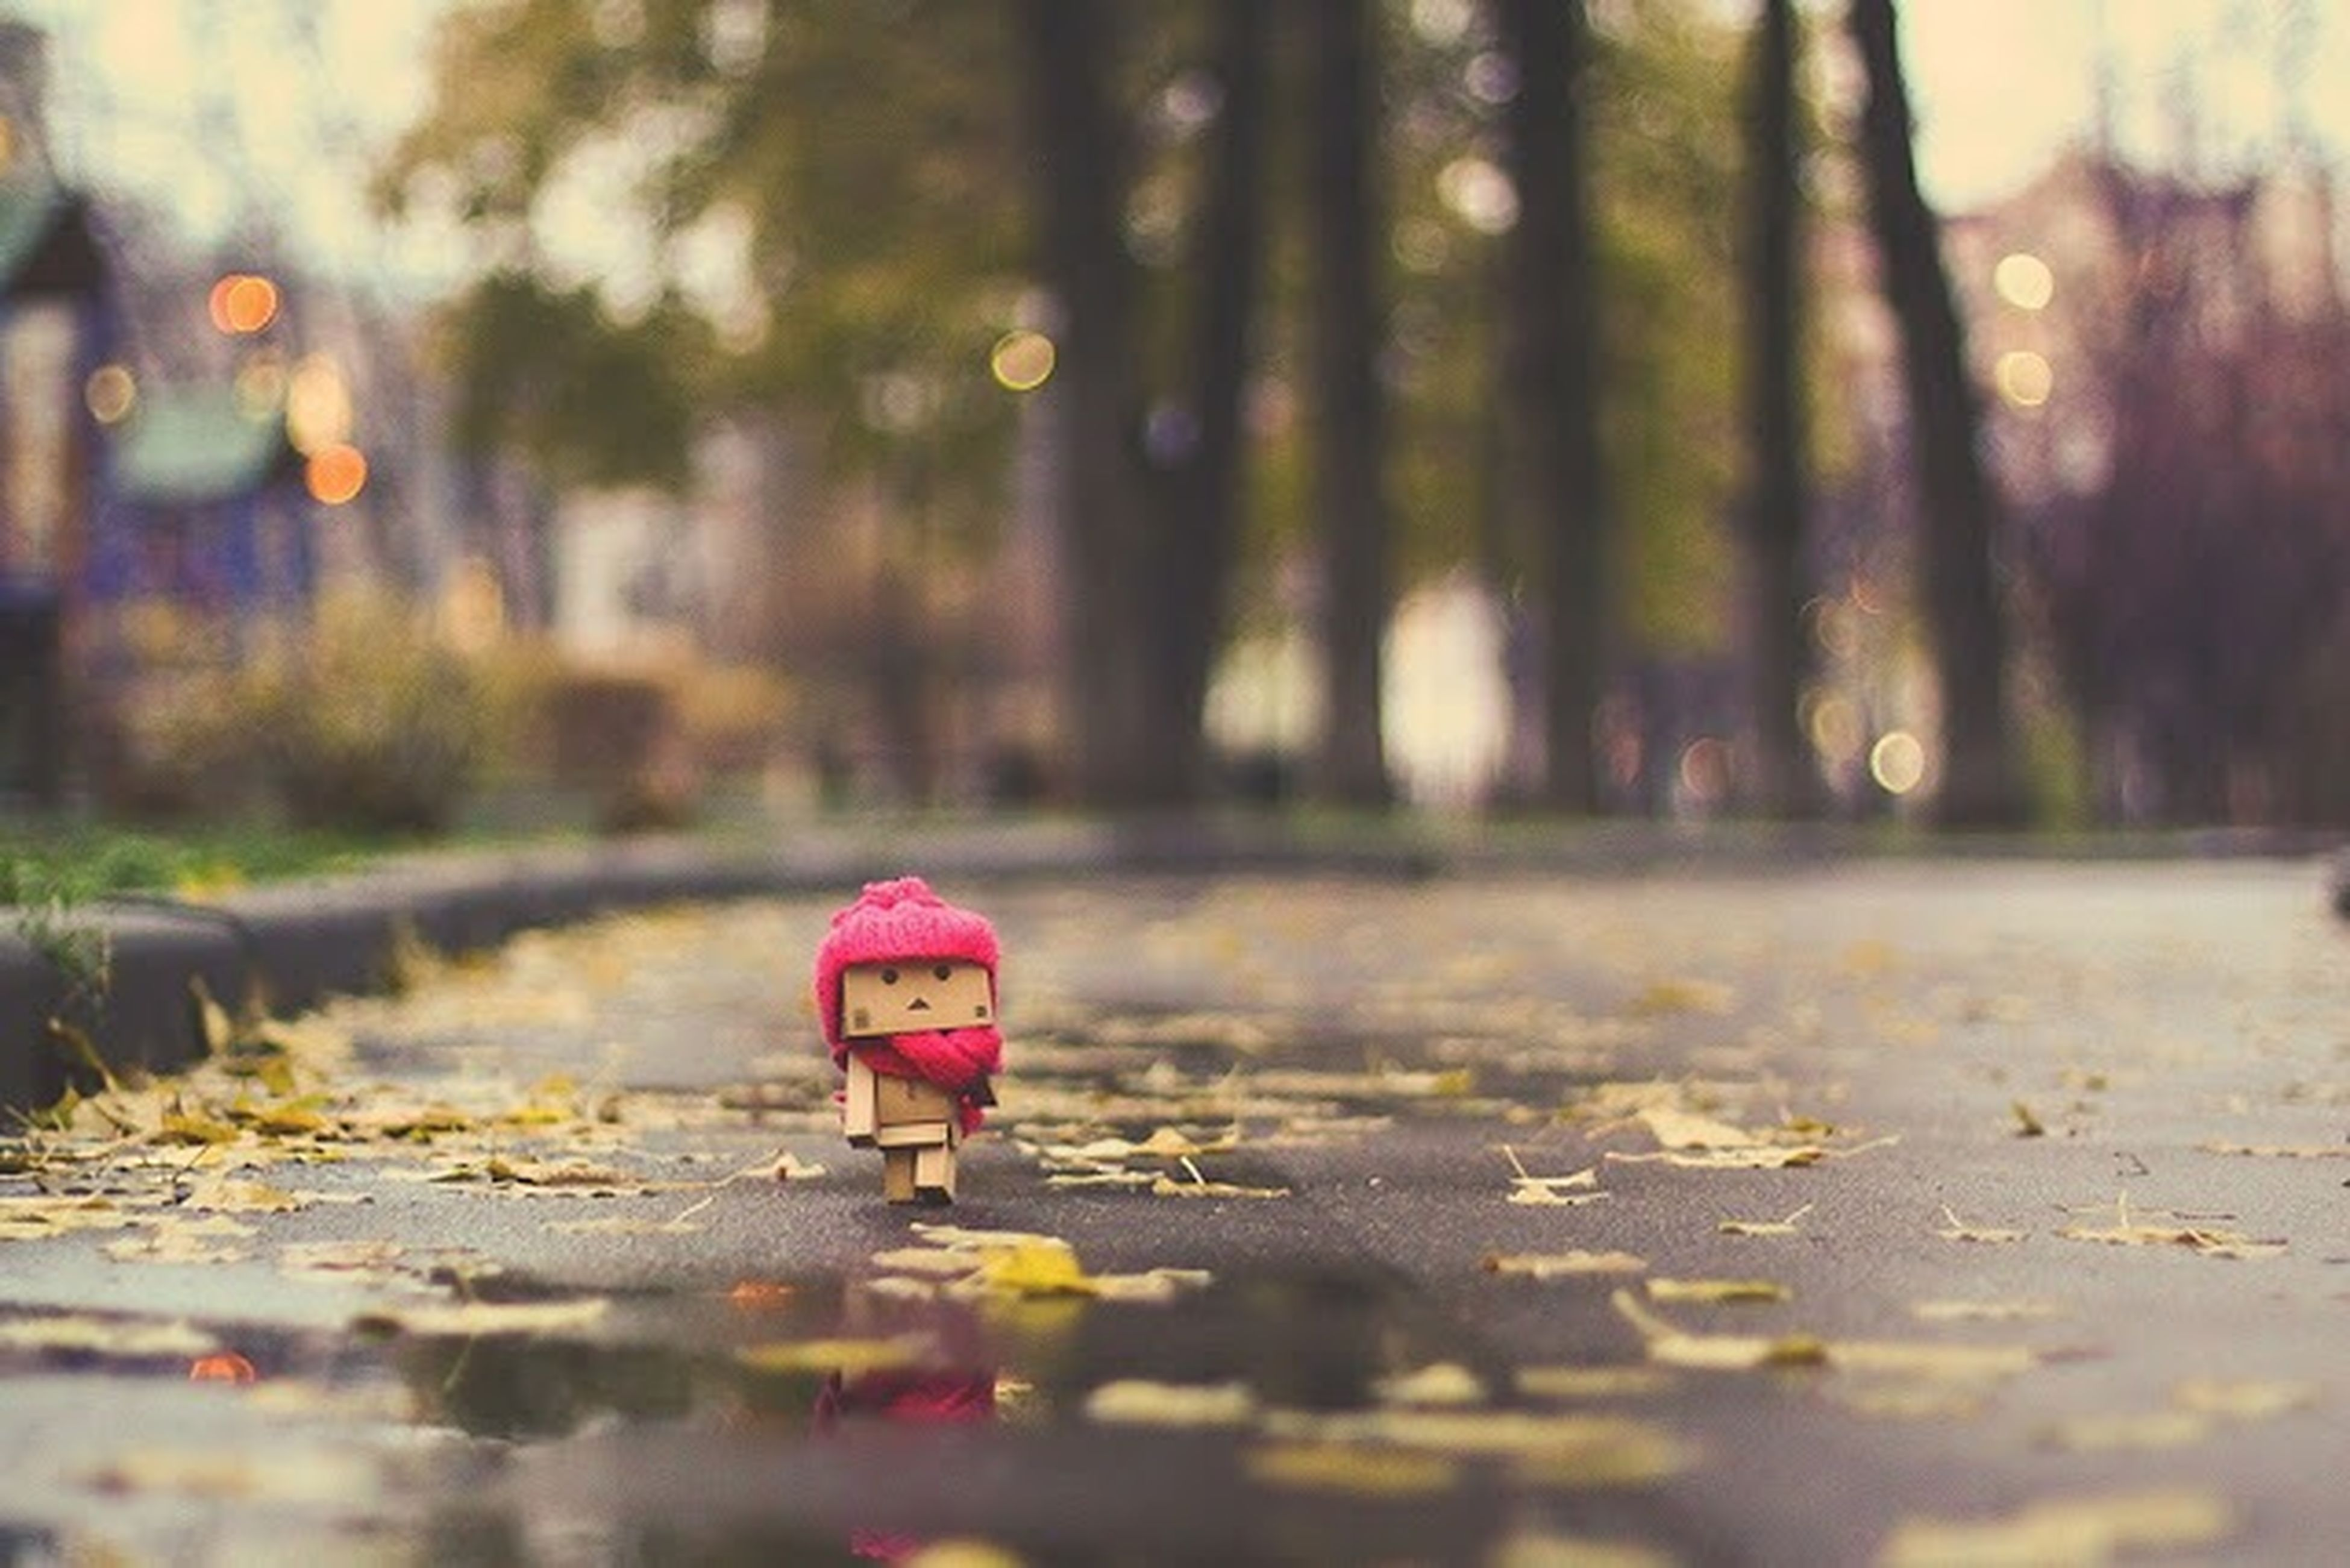 selective focus, red, focus on foreground, surface level, outdoors, lifestyles, day, walking, leisure activity, childhood, nature, standing, street, rear view, umbrella, tranquility, close-up, full length